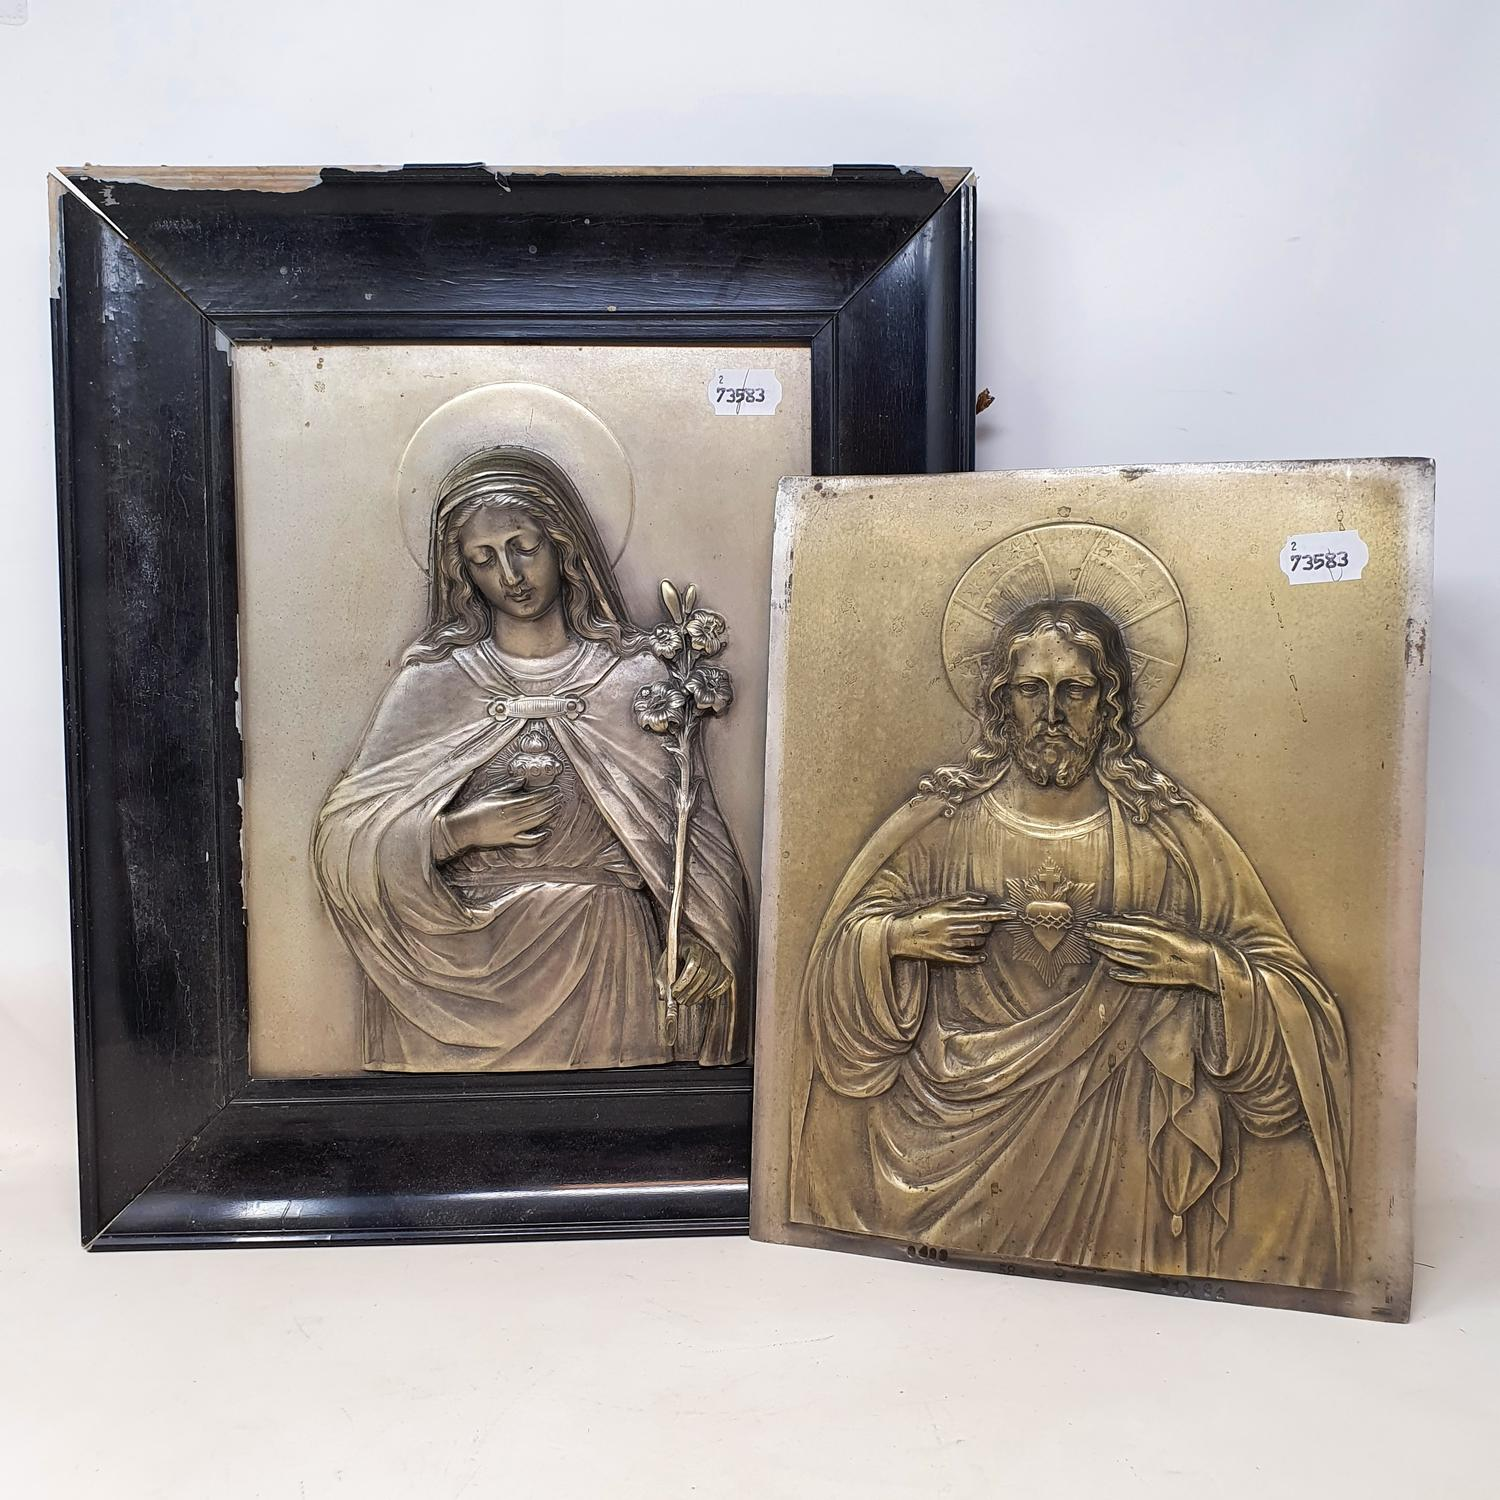 Two silver plated religious icons, of Jesus Christ and Mary of the Sacred Heart, 33 x 25 cm